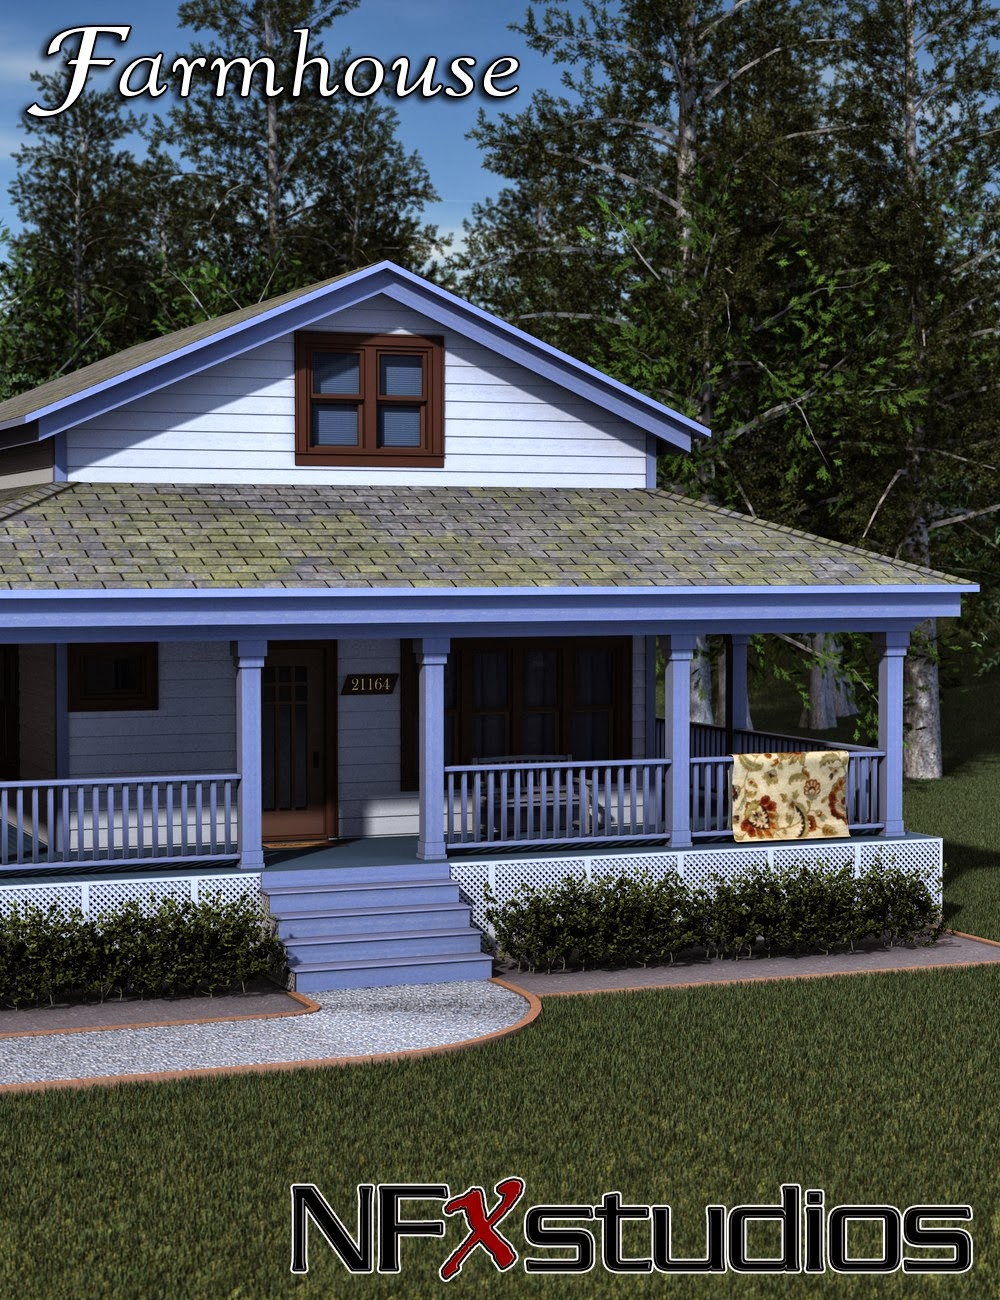 3d Models - NFXstudios Farmhouse